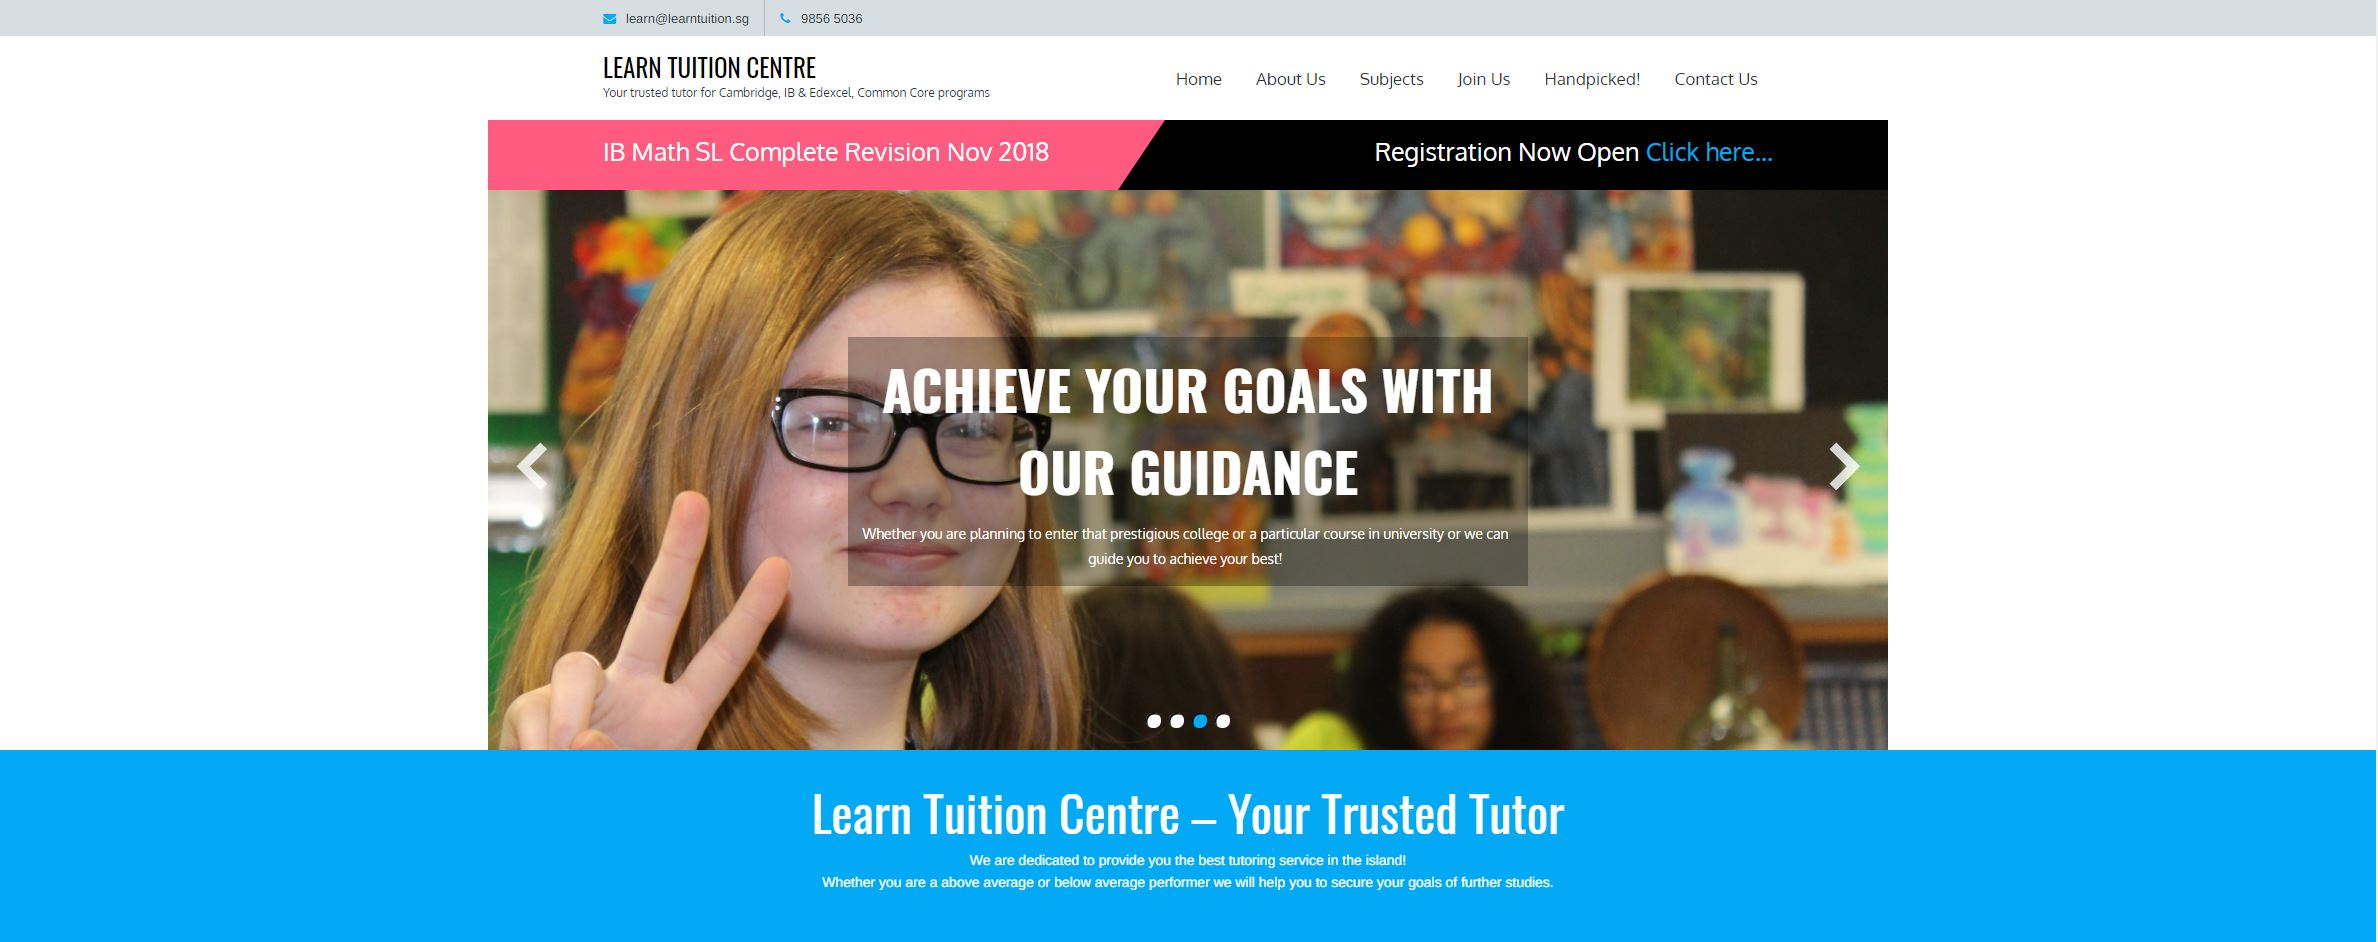 Learn Tuition Centre IB Tuition